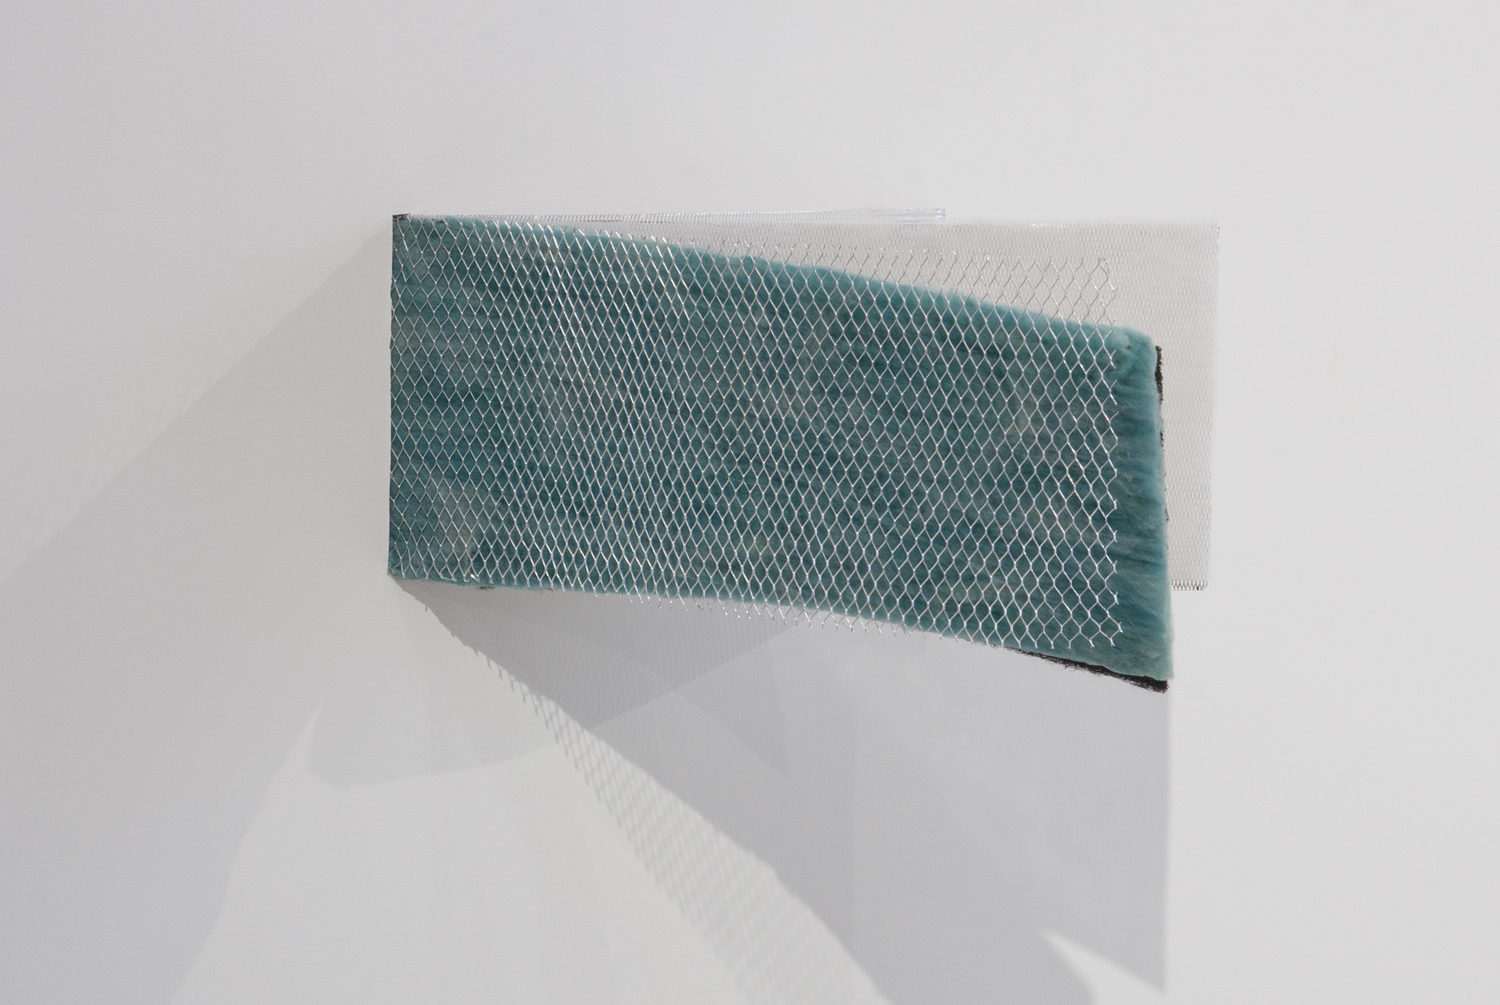 Unmeshed Odor Trap  , 2014.Carbon coated polyester, metal mesh, fiberglass, uncoated polyester